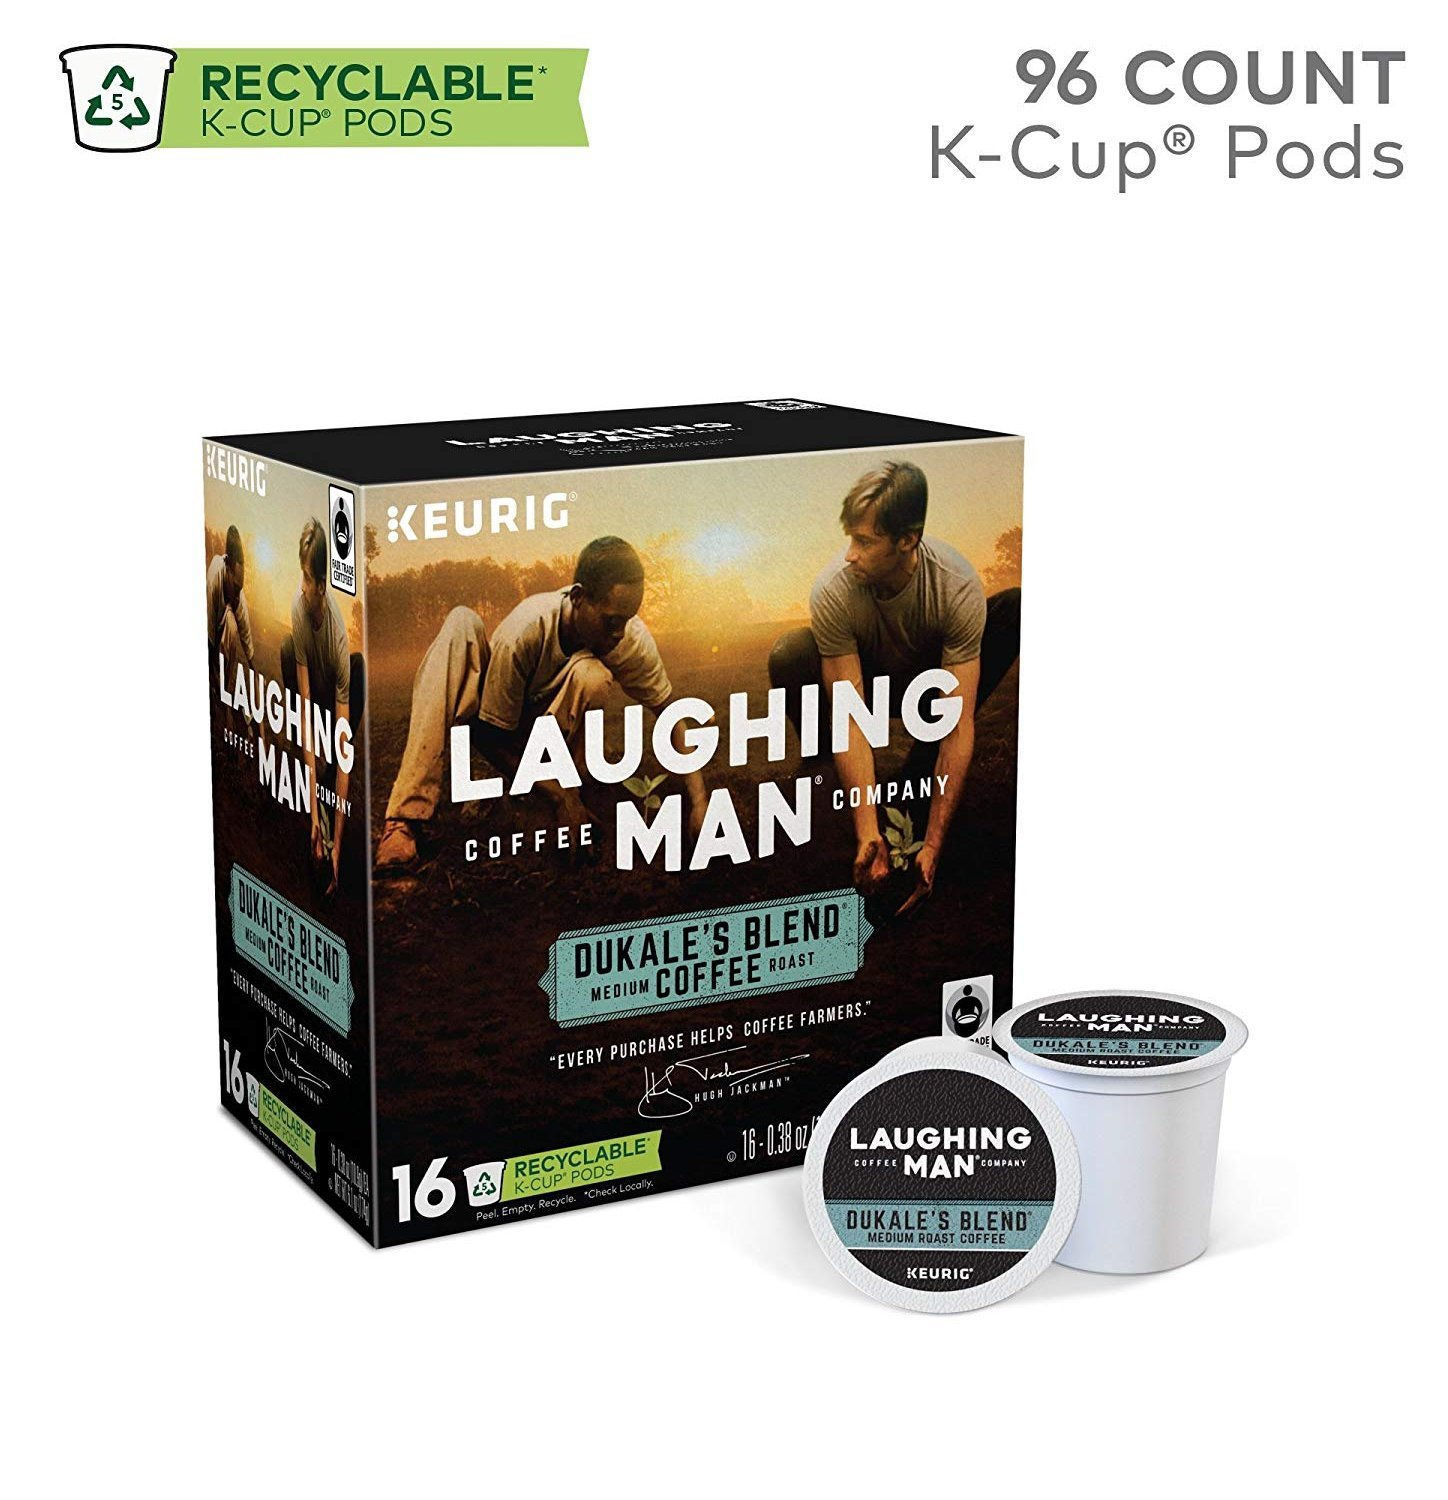 Laughing Man Dukale's Blend Coffee Keurig K-Cups, 96 Count by Laughing Man (Image #2)